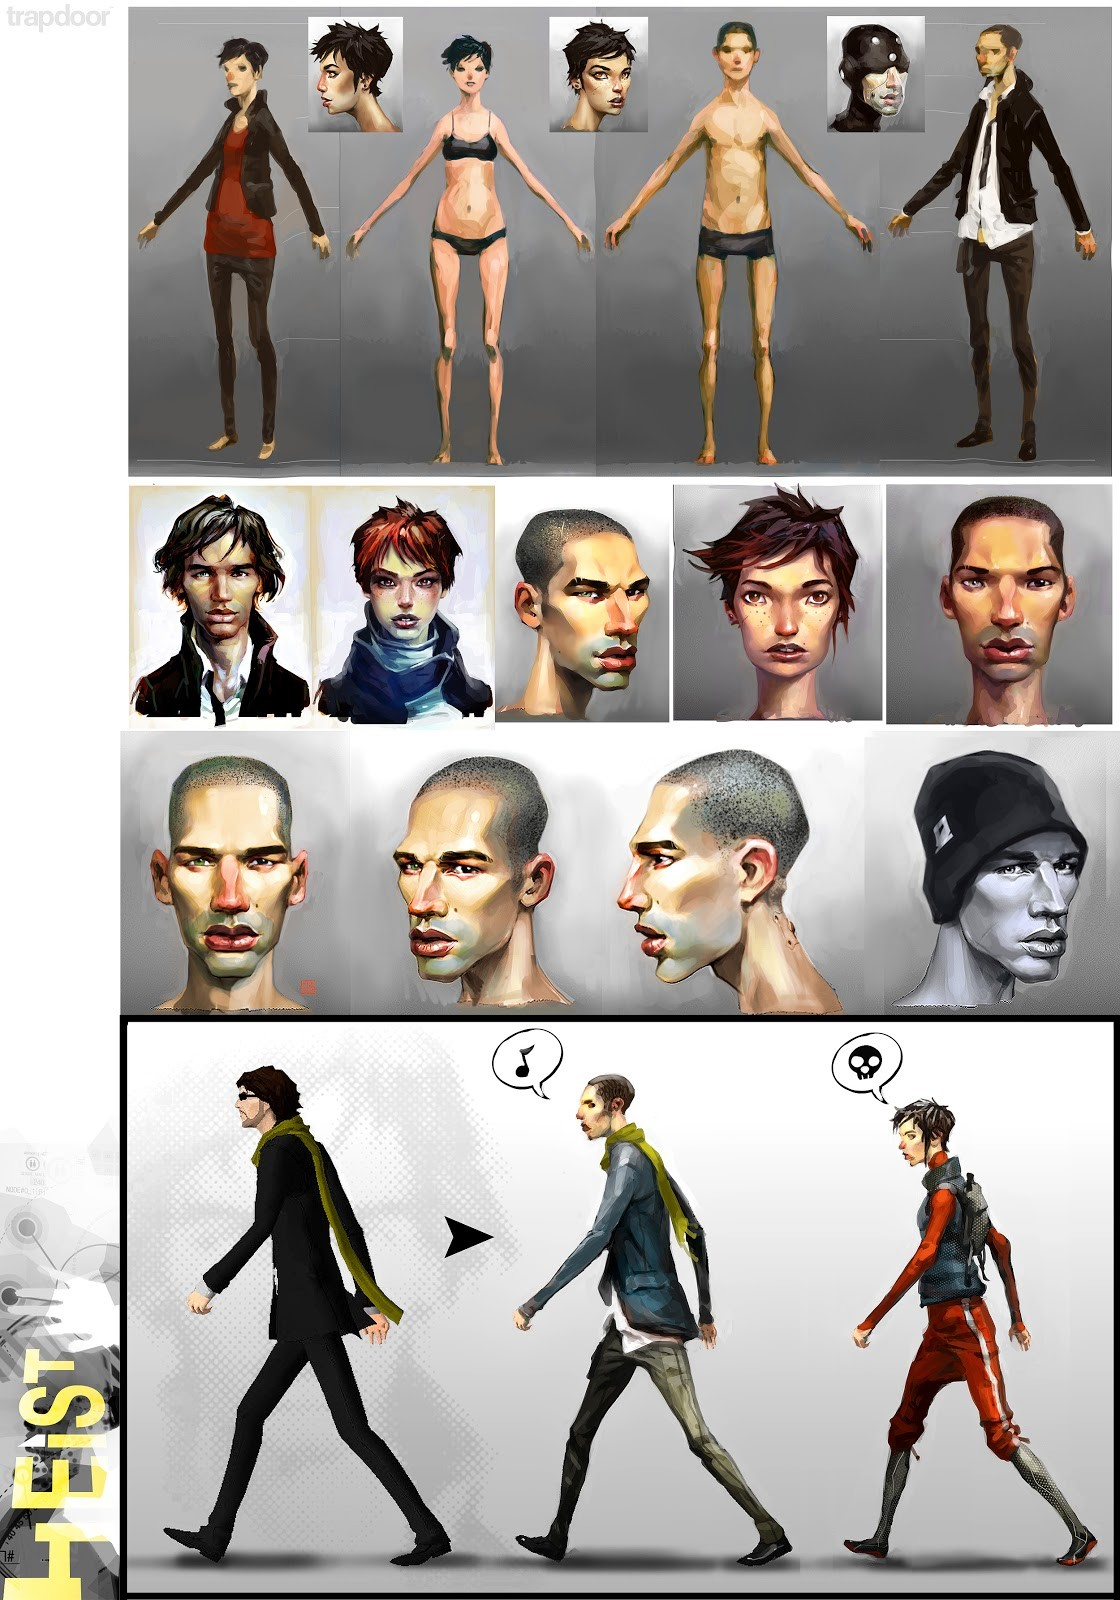 Thierry doizon bt heist characters03